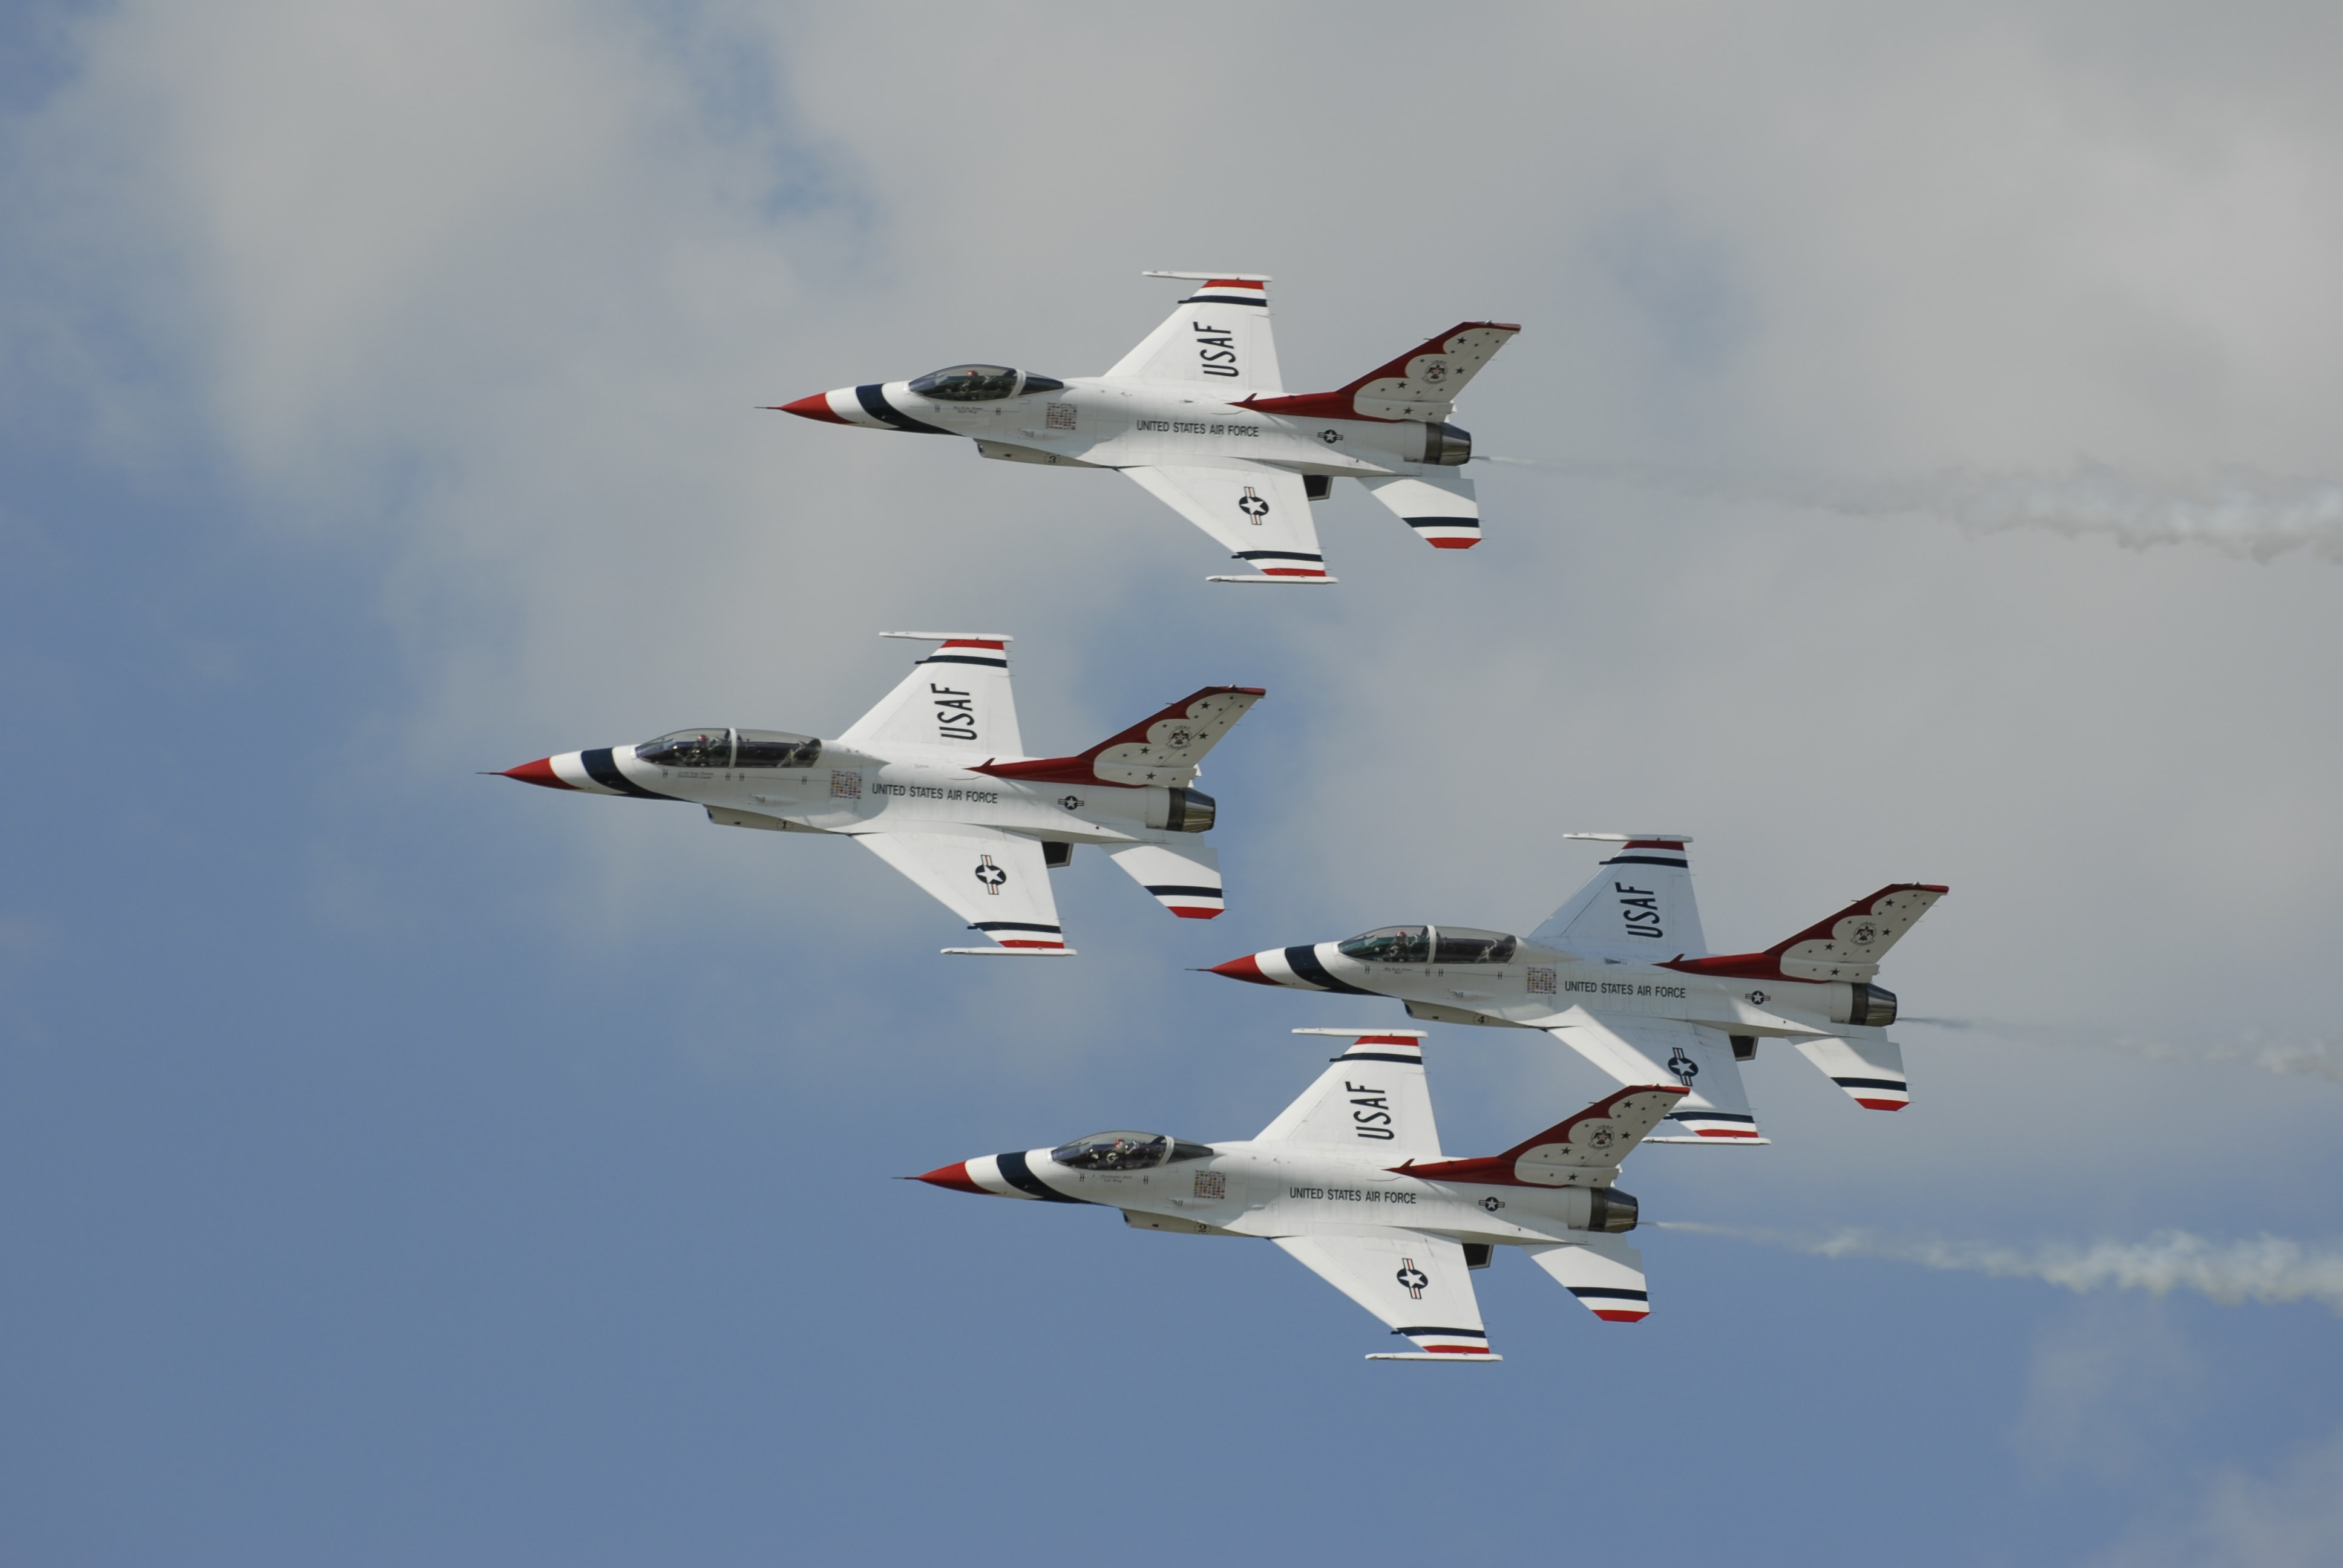 U.S. Air Force fighter jets flying in formation.